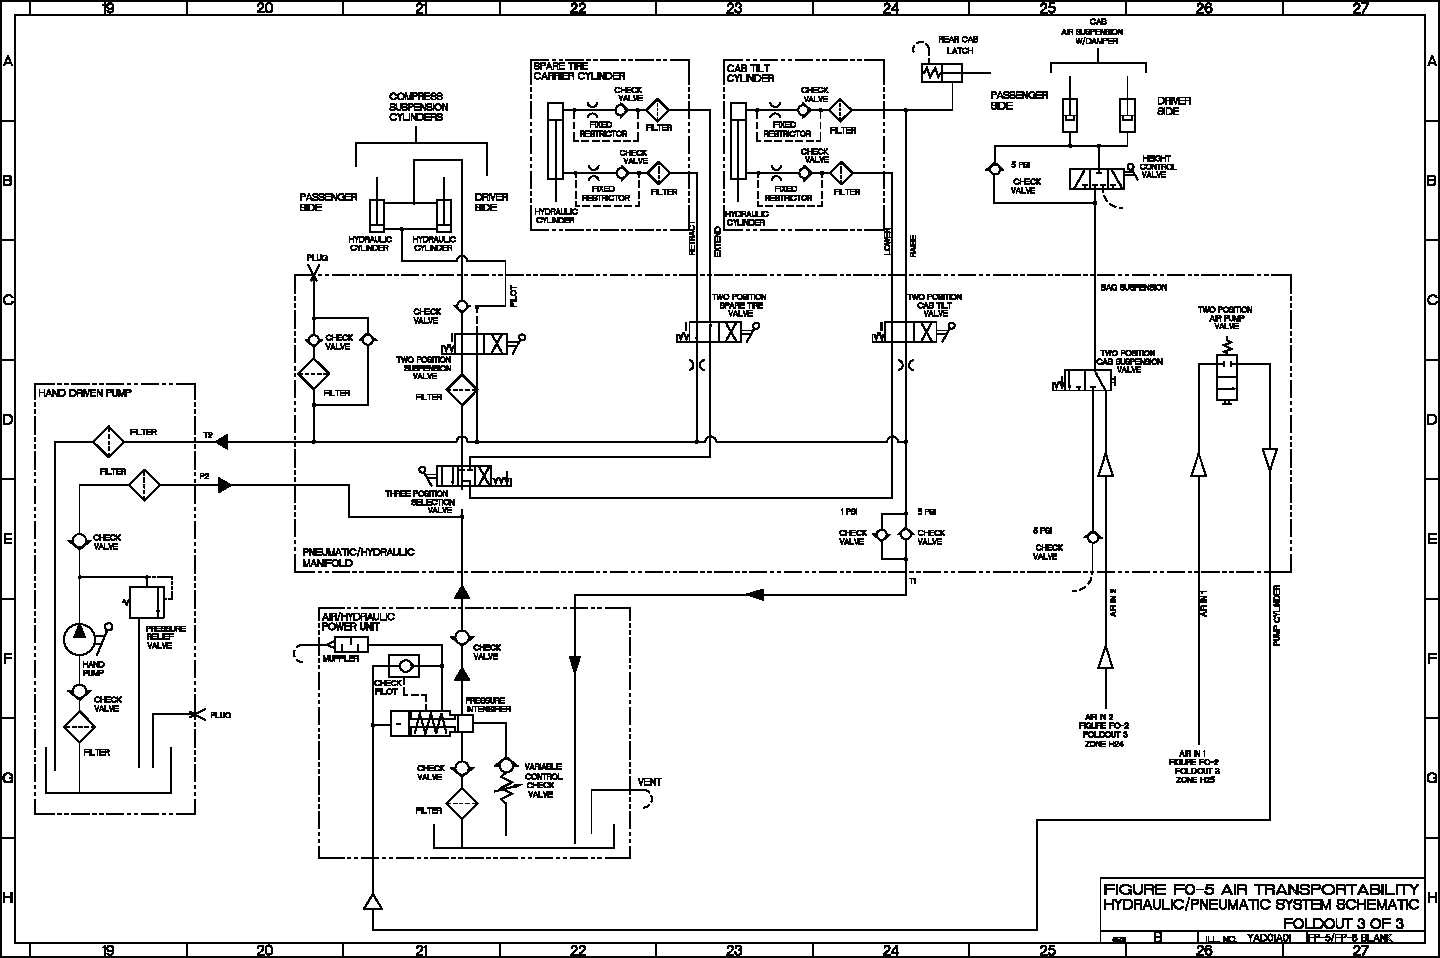 5425 John Deere Wiring Diagram furthermore Cadillac Eldorado 1994 V8 Fuel System Diagram in addition Simple Pneumatics Schematics besides Tonkin Auto Parts also  on gmc wiring diagrams